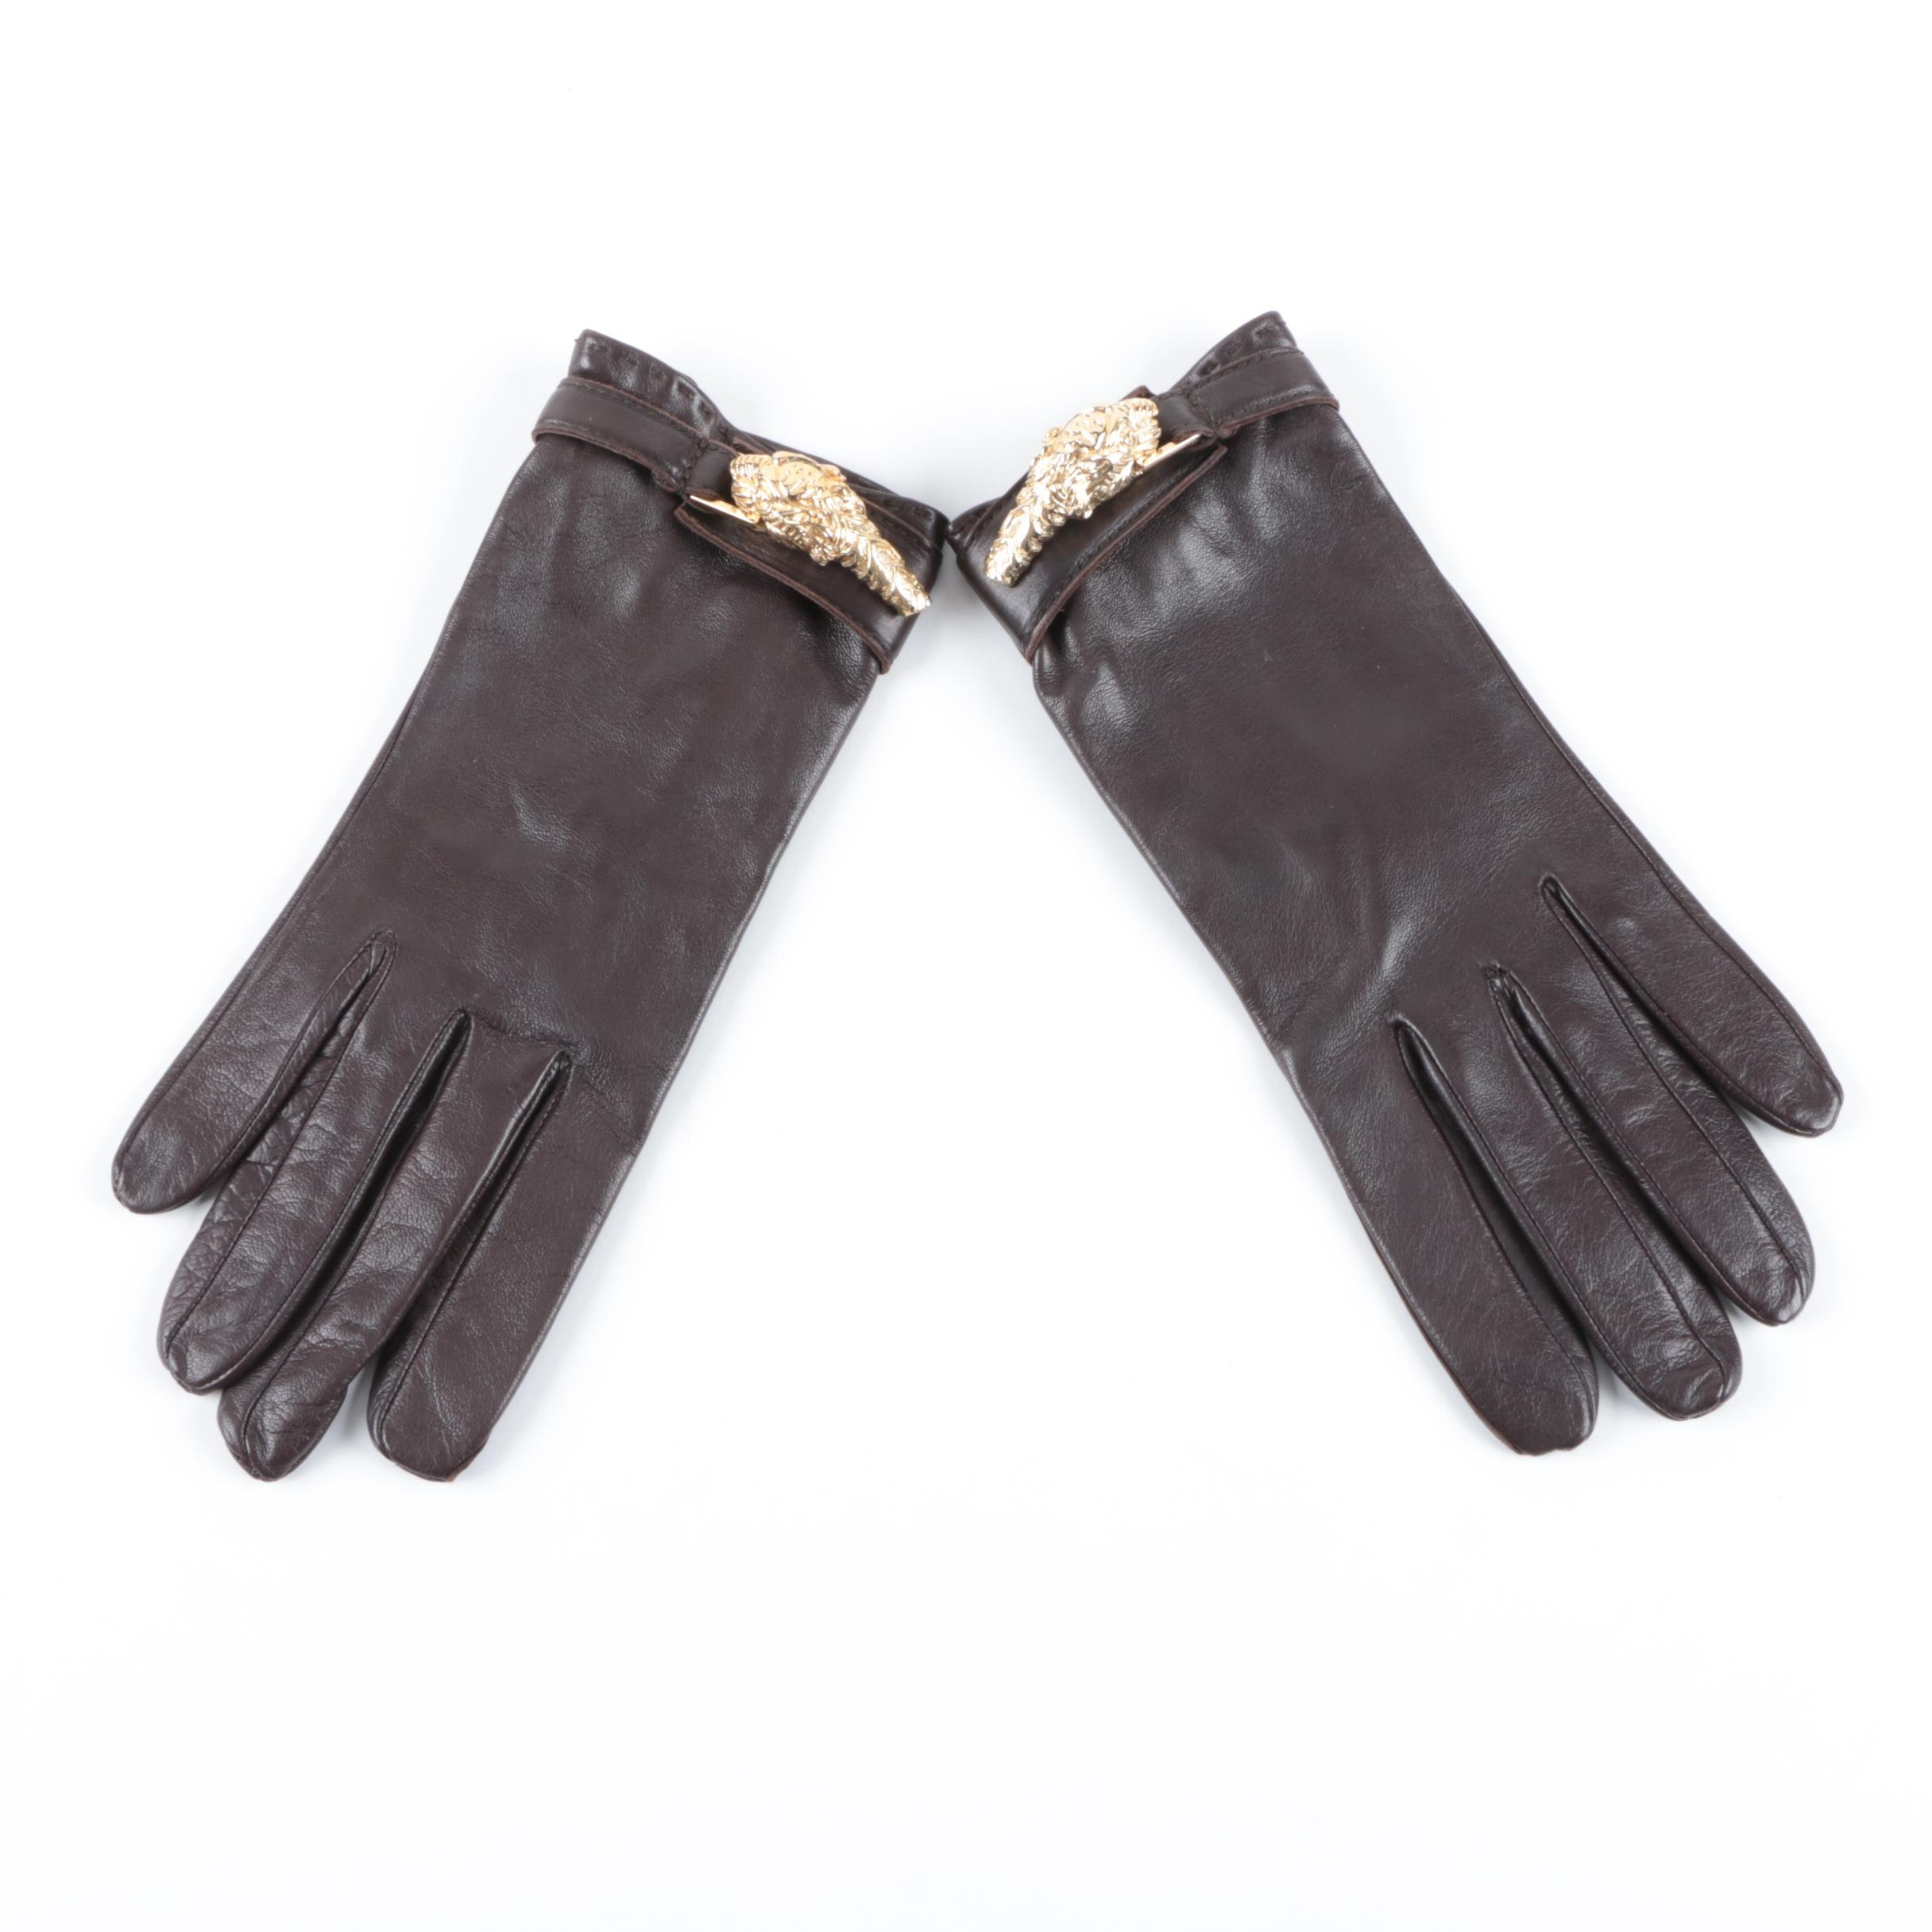 Vintage Gucci Tiger Head Leather Gloves